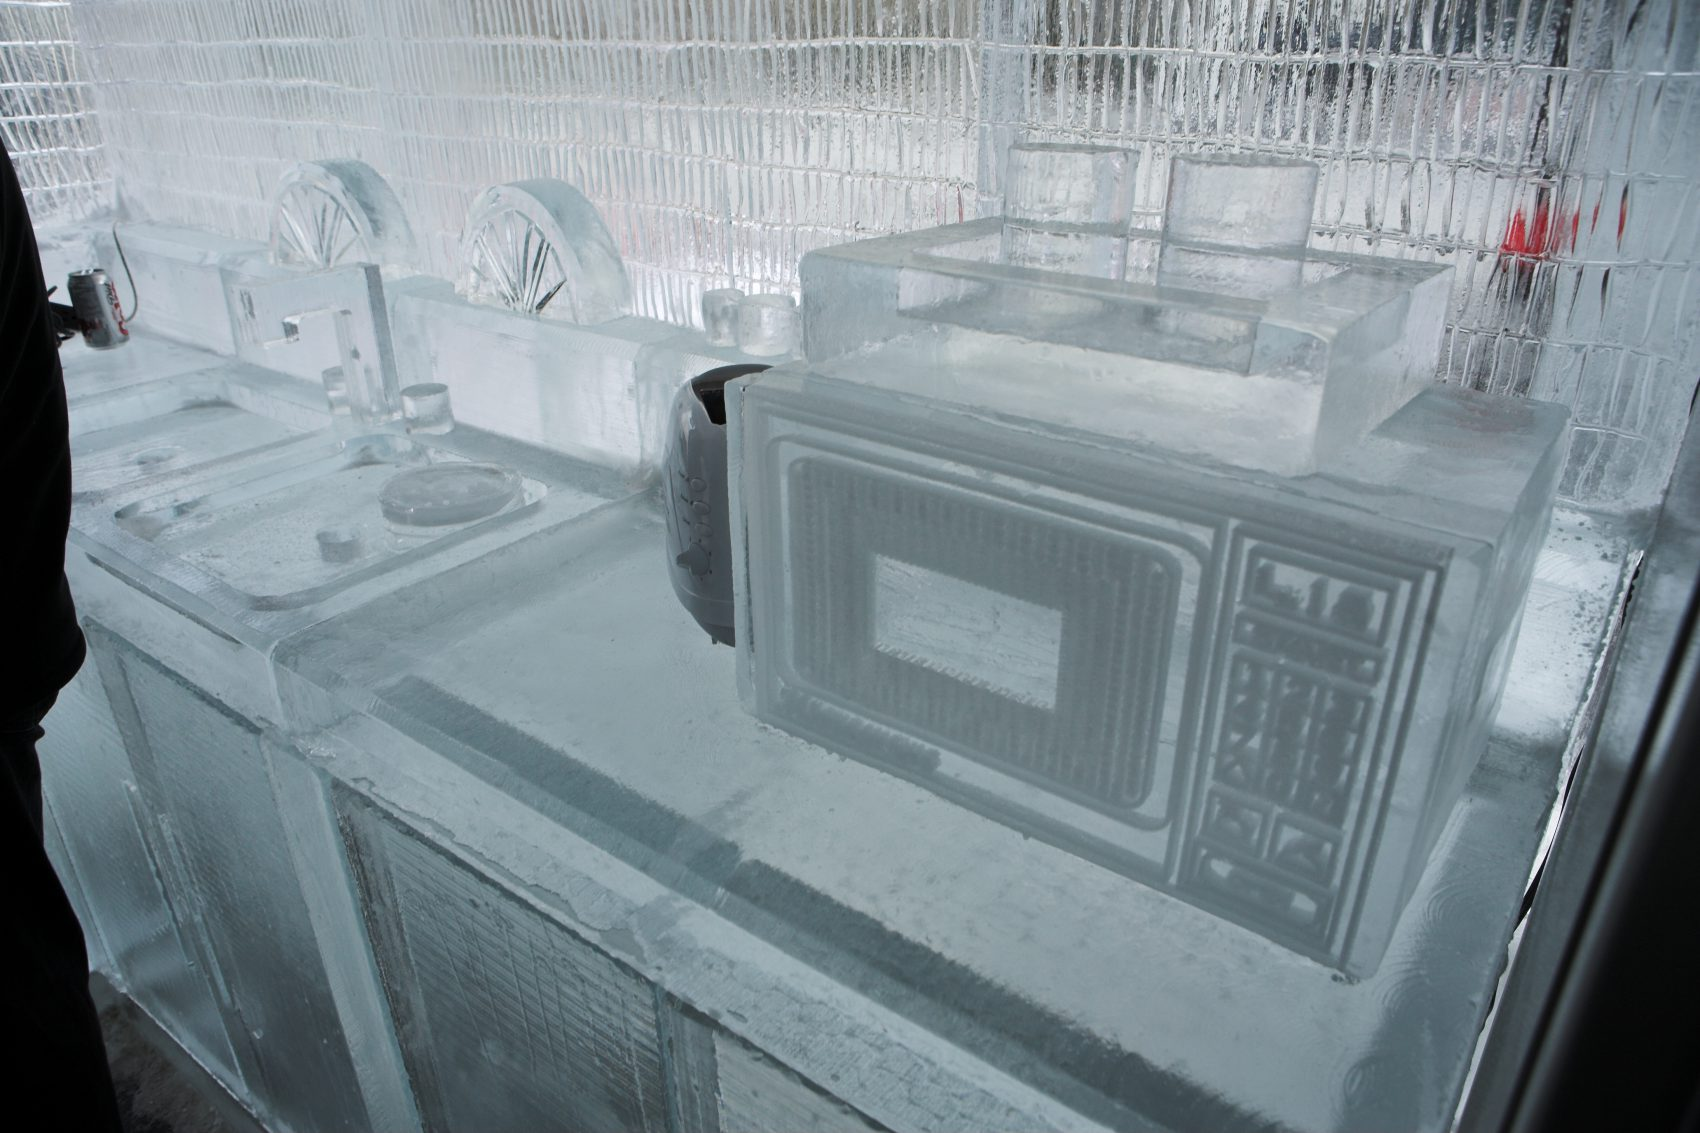 Kitchen made out of ice with detailed microwave